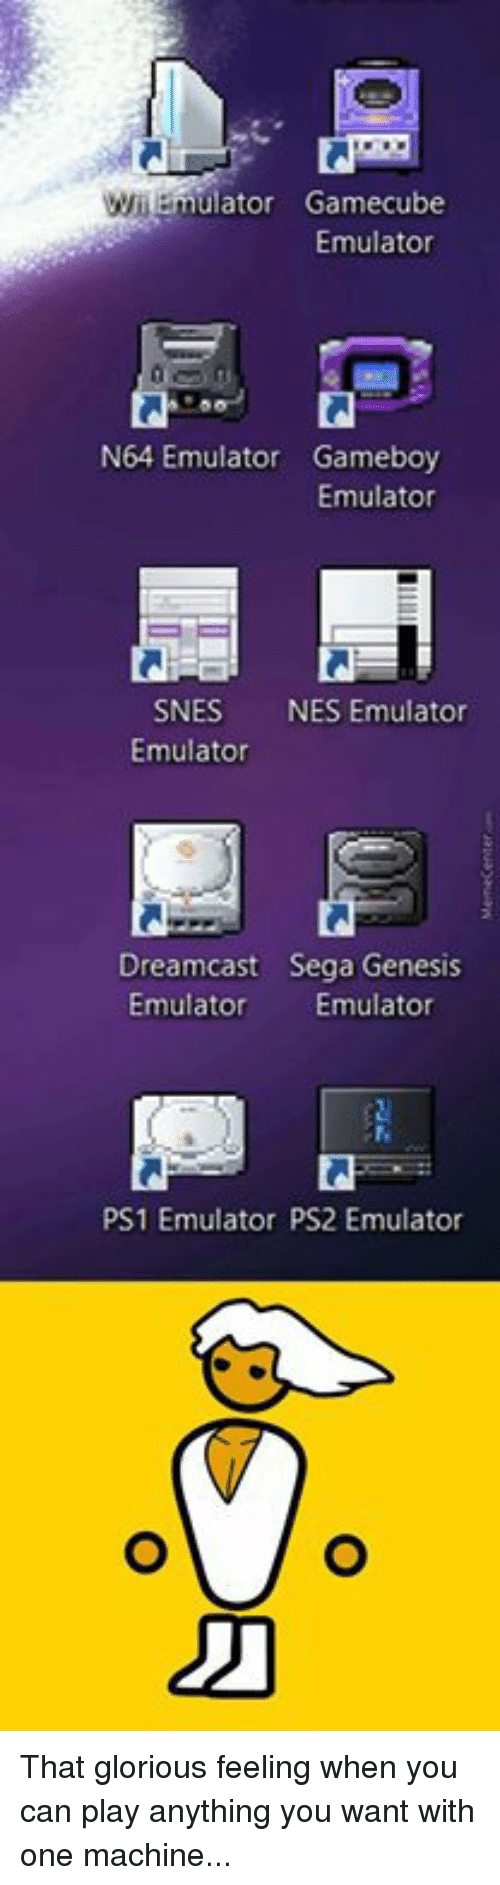 Memes, Genesis, and Glorious: lator Gamecube  Emulator  N64 Emulator Gameboy  Emulator  SNES  NES Emulator  Emulator  Dreamcast Sega Genesis  Emulator Emulator  PS1 Emulator PS2 Emulator That glorious feeling when you can play anything you want with one machine...